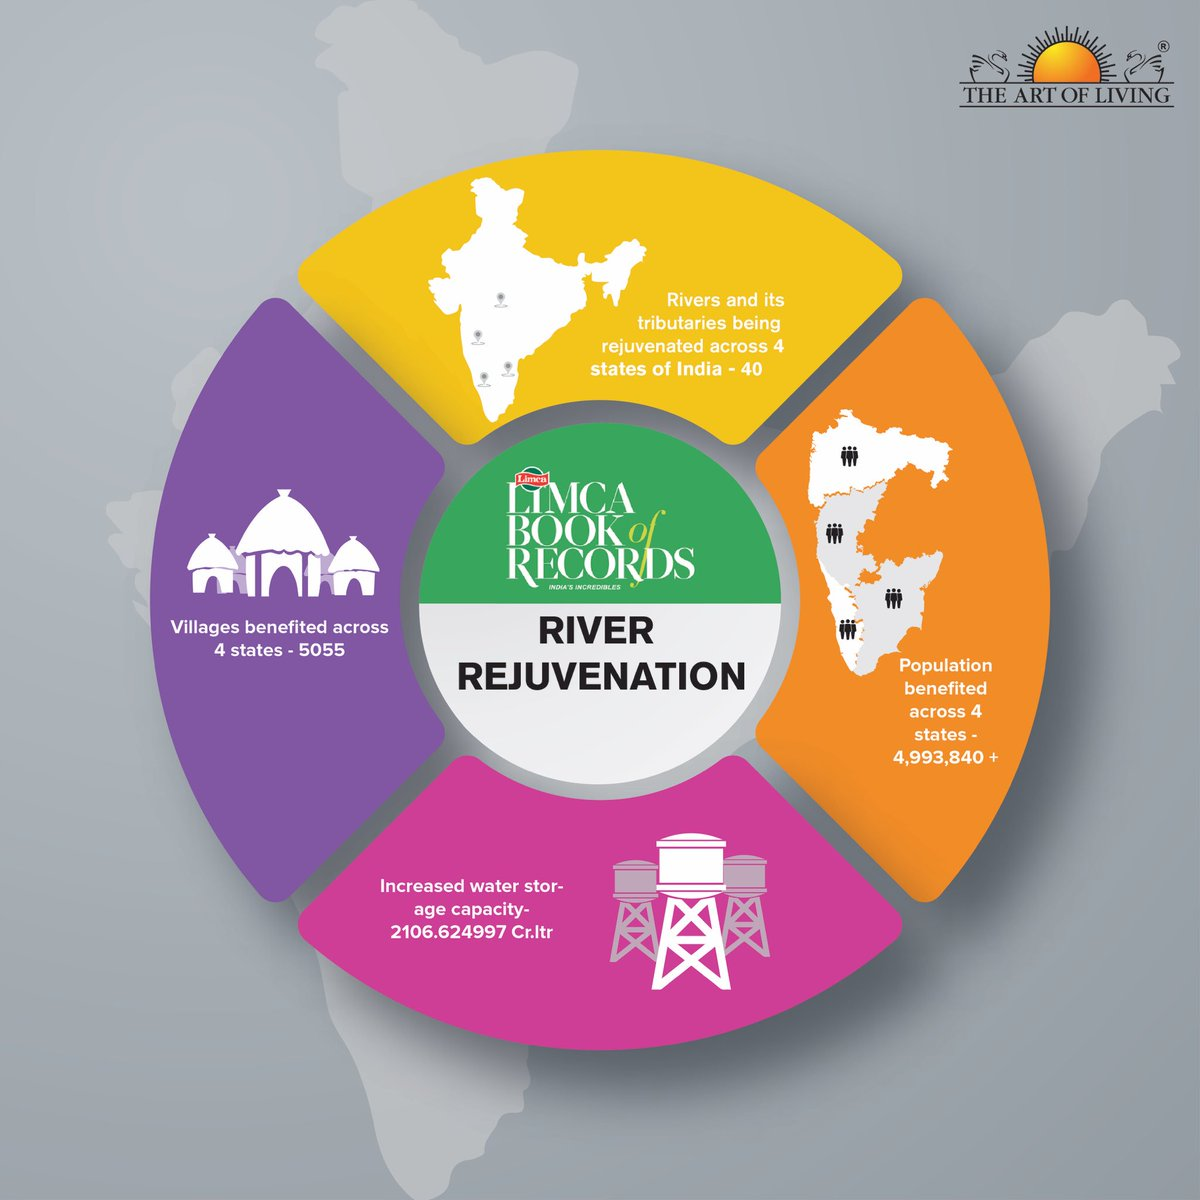 .@SriSri founded @ArtofLiving has been included in the Limca Book of Records 2019-India At Her Best for the 'Most extensive river rejuvenation by an NGO' for the org effort to resolve the country's severe water problem by reviving 40 rivers & its tributaries in 4 Indian states.